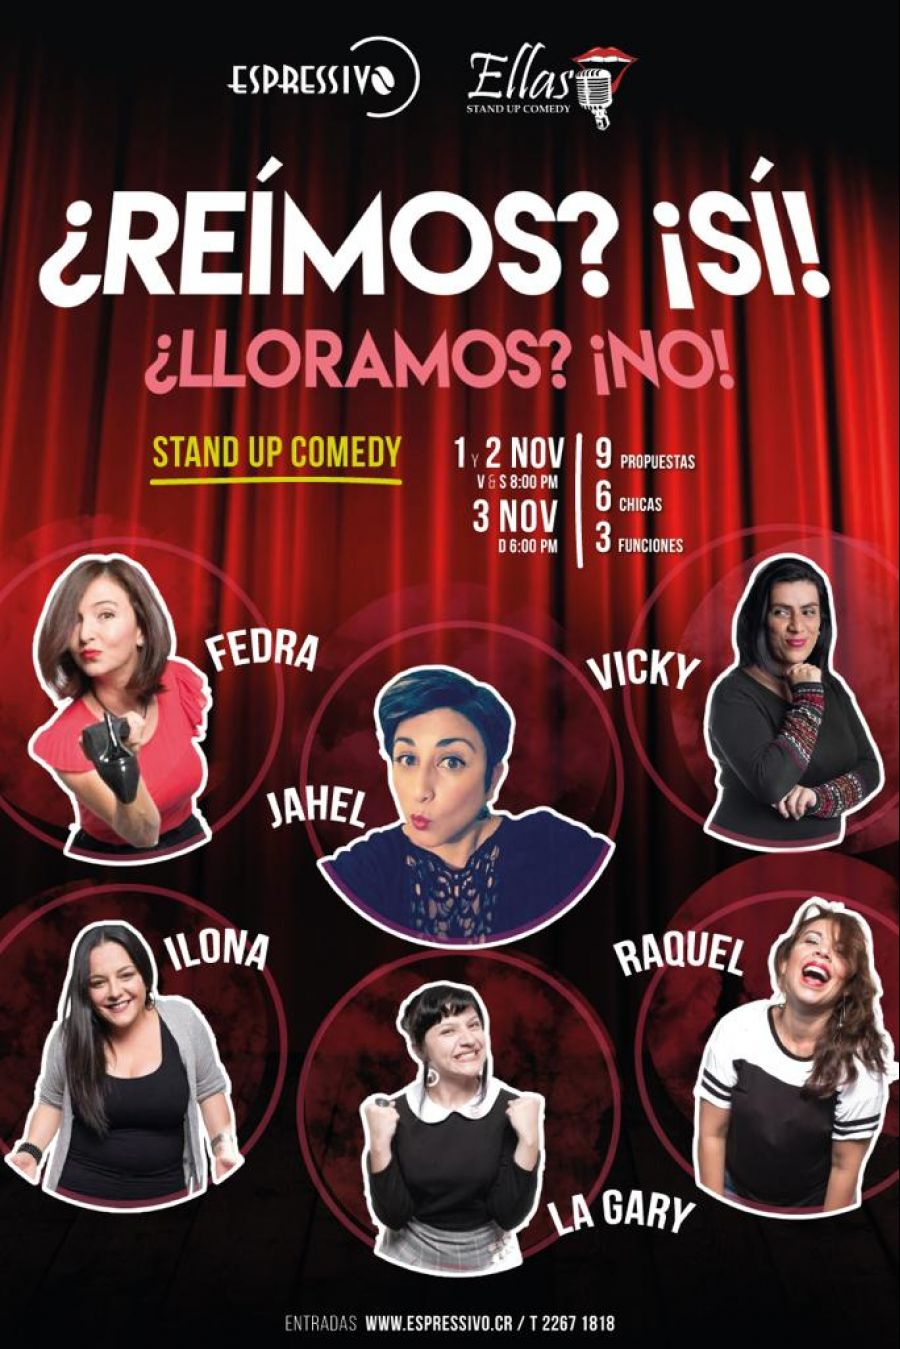 ¿Reímos? ¡sí! ¿lloramos? ¡no!. Ellas. Stand up comedy